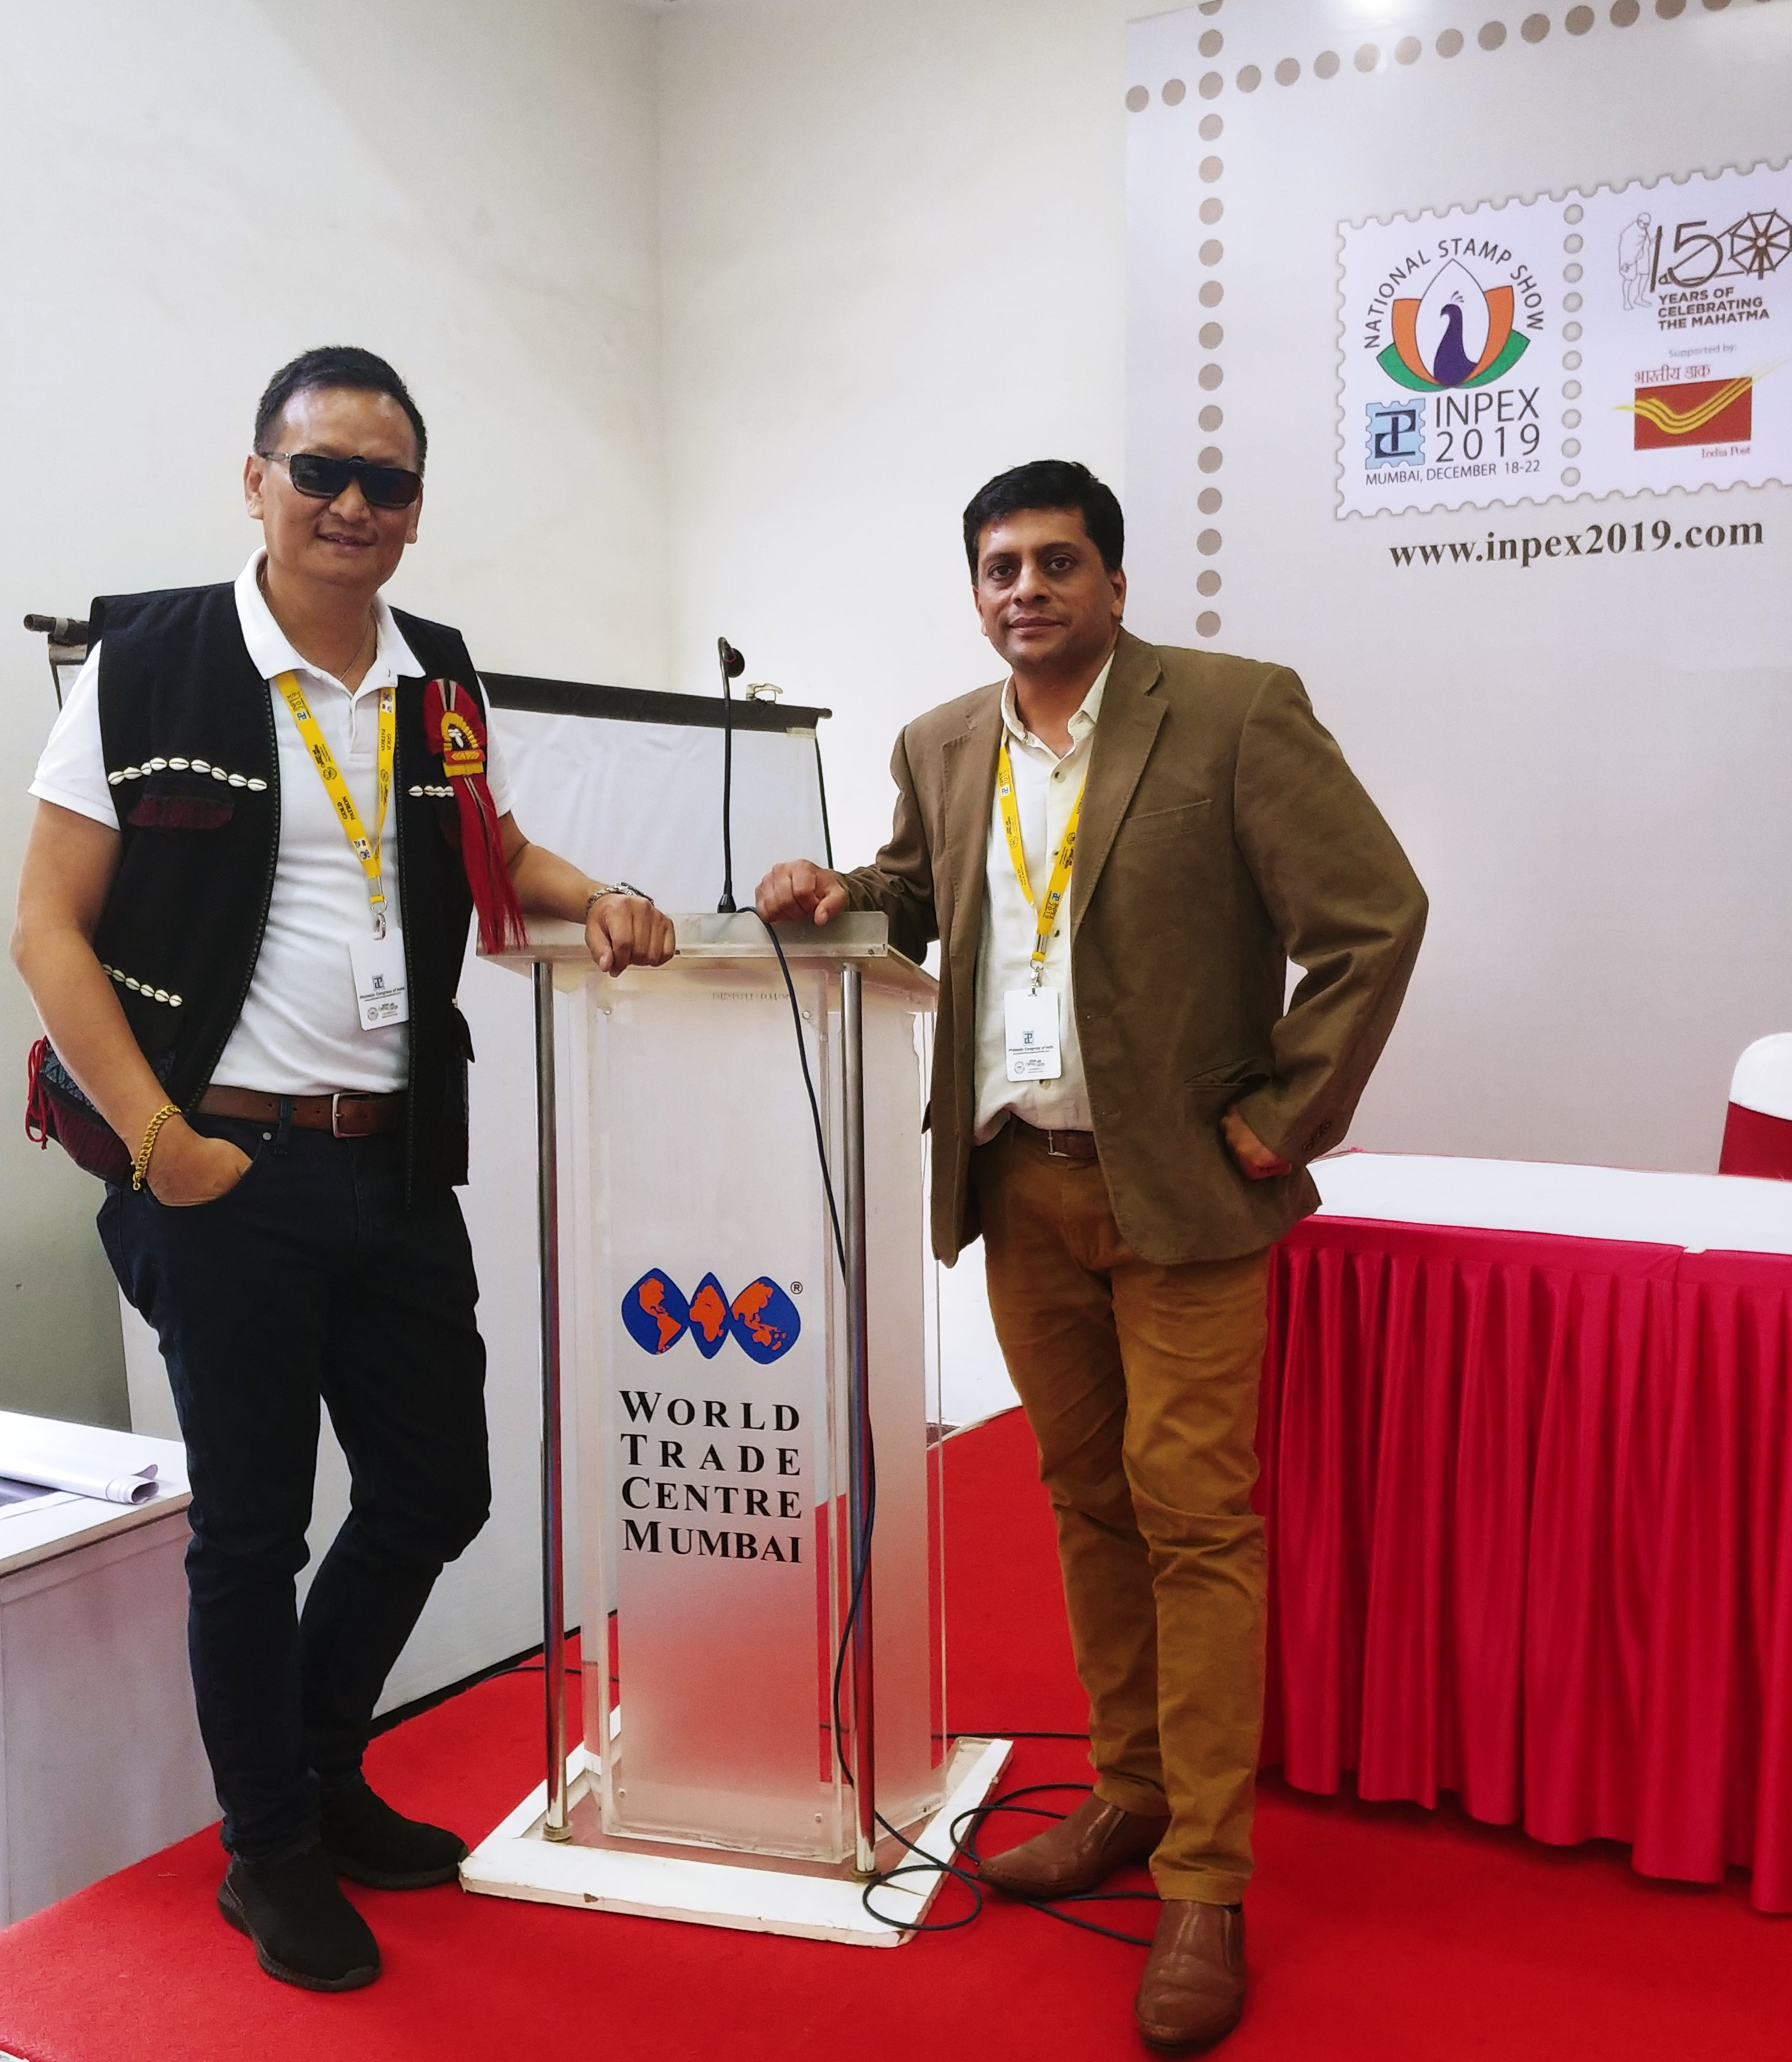 Nagaland philatelist wins  'Large Silver Award' at Inpex 2019